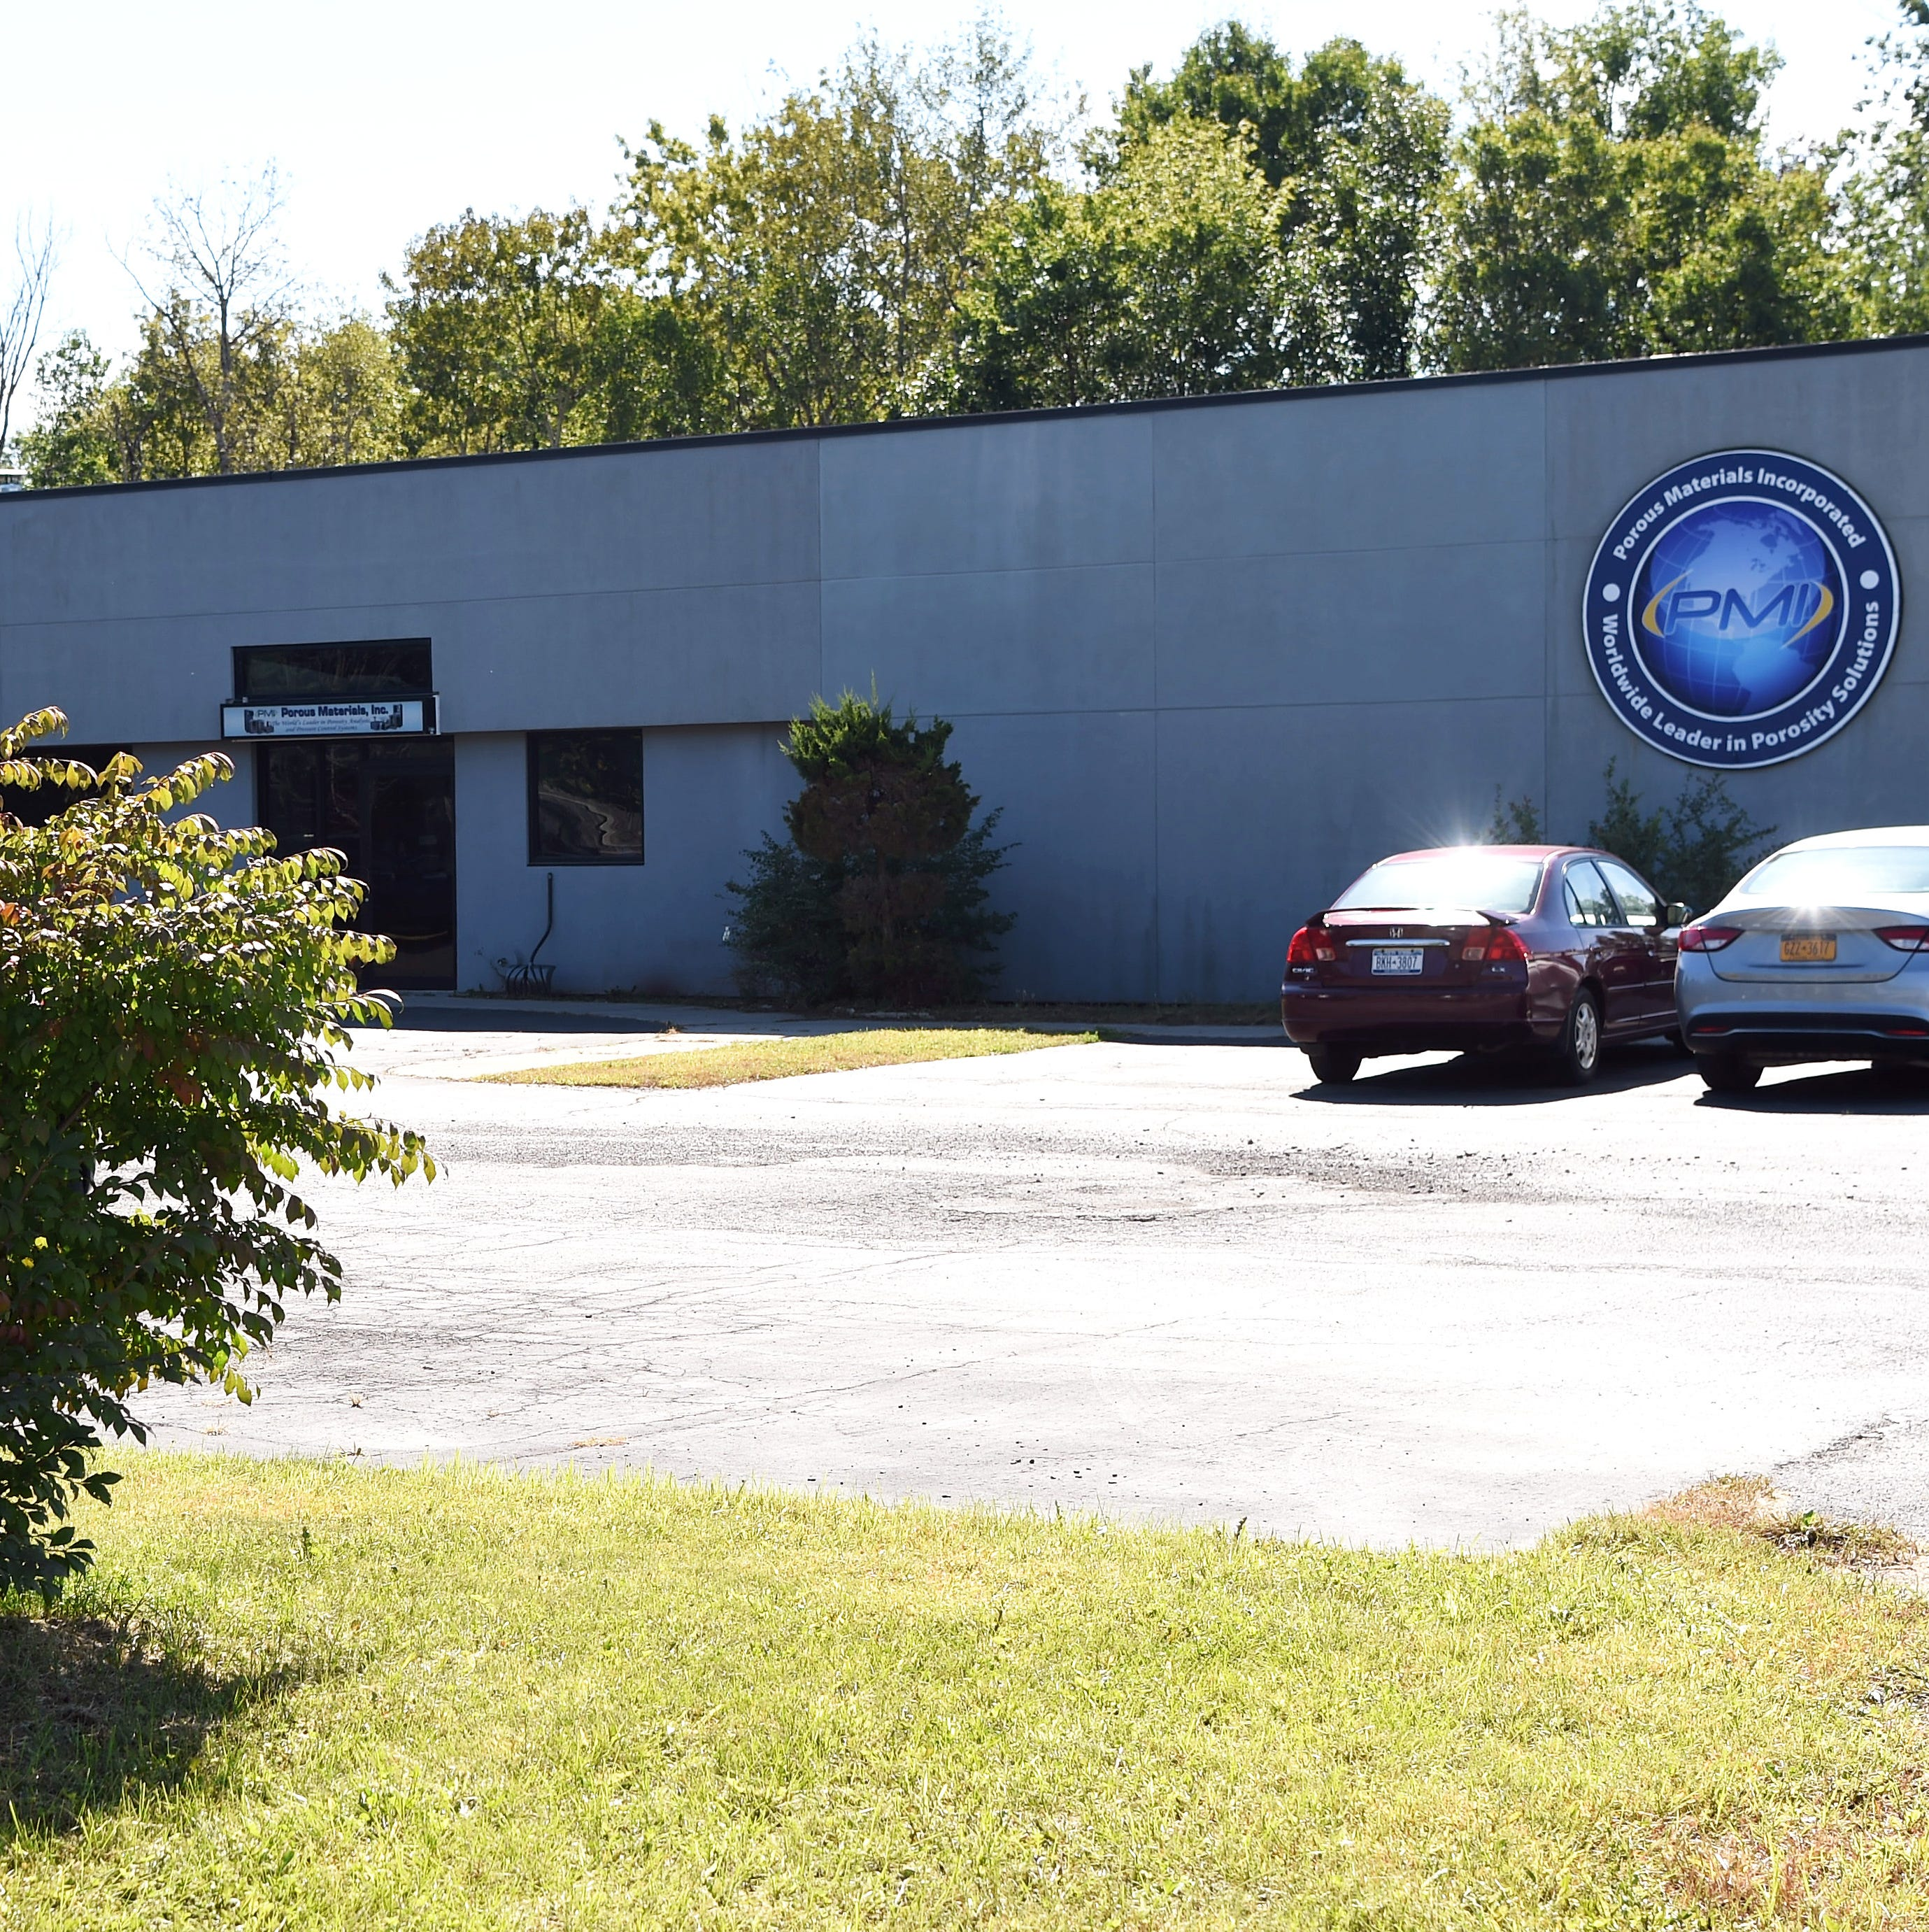 EEOC lays out disturbing practices at Ithaca company; CEO denies claim